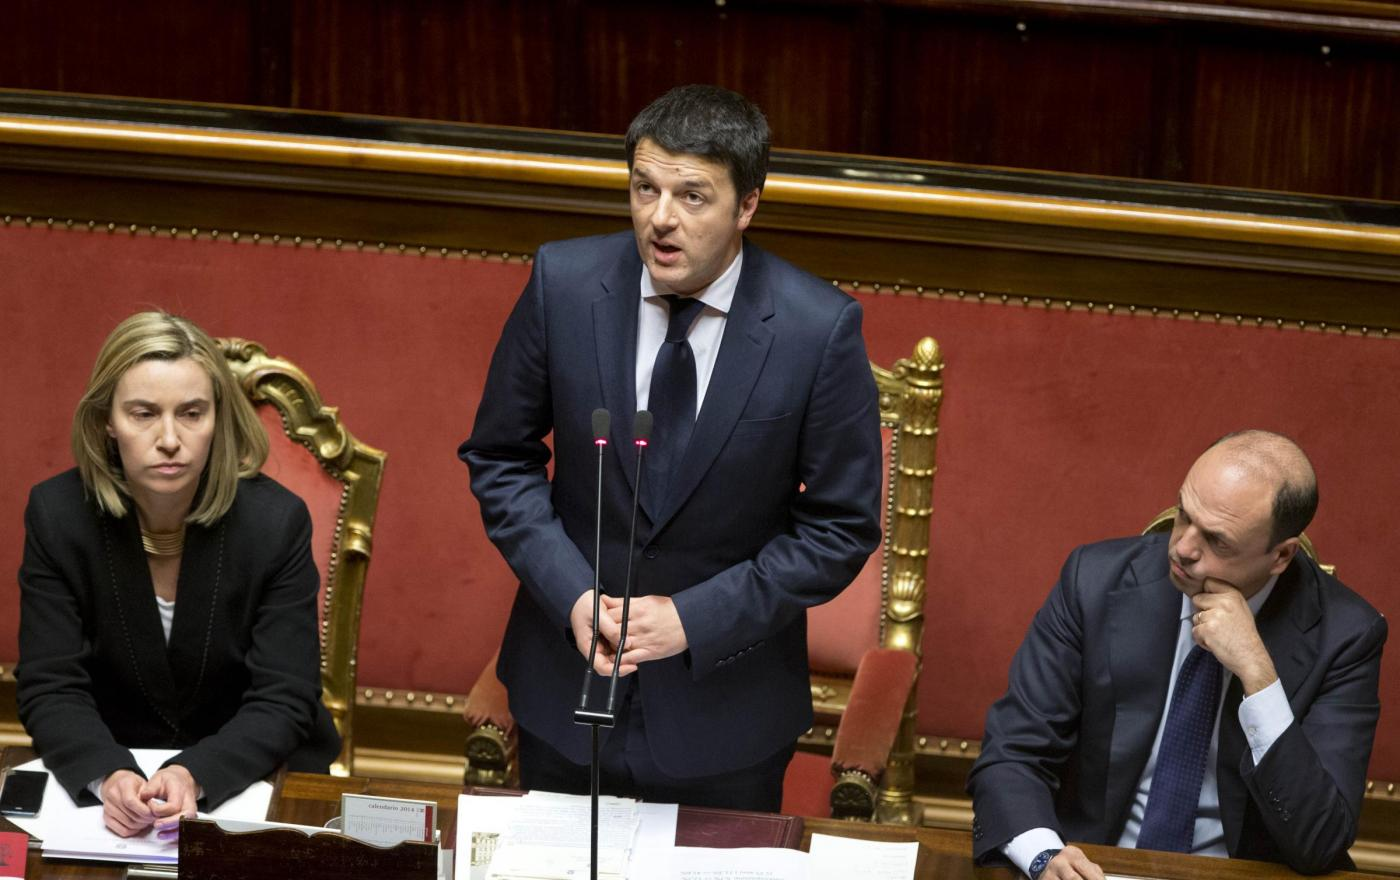 Governo renzi voto di fiducia alla camera diretta streaming for Diretta camera dei deputati streaming